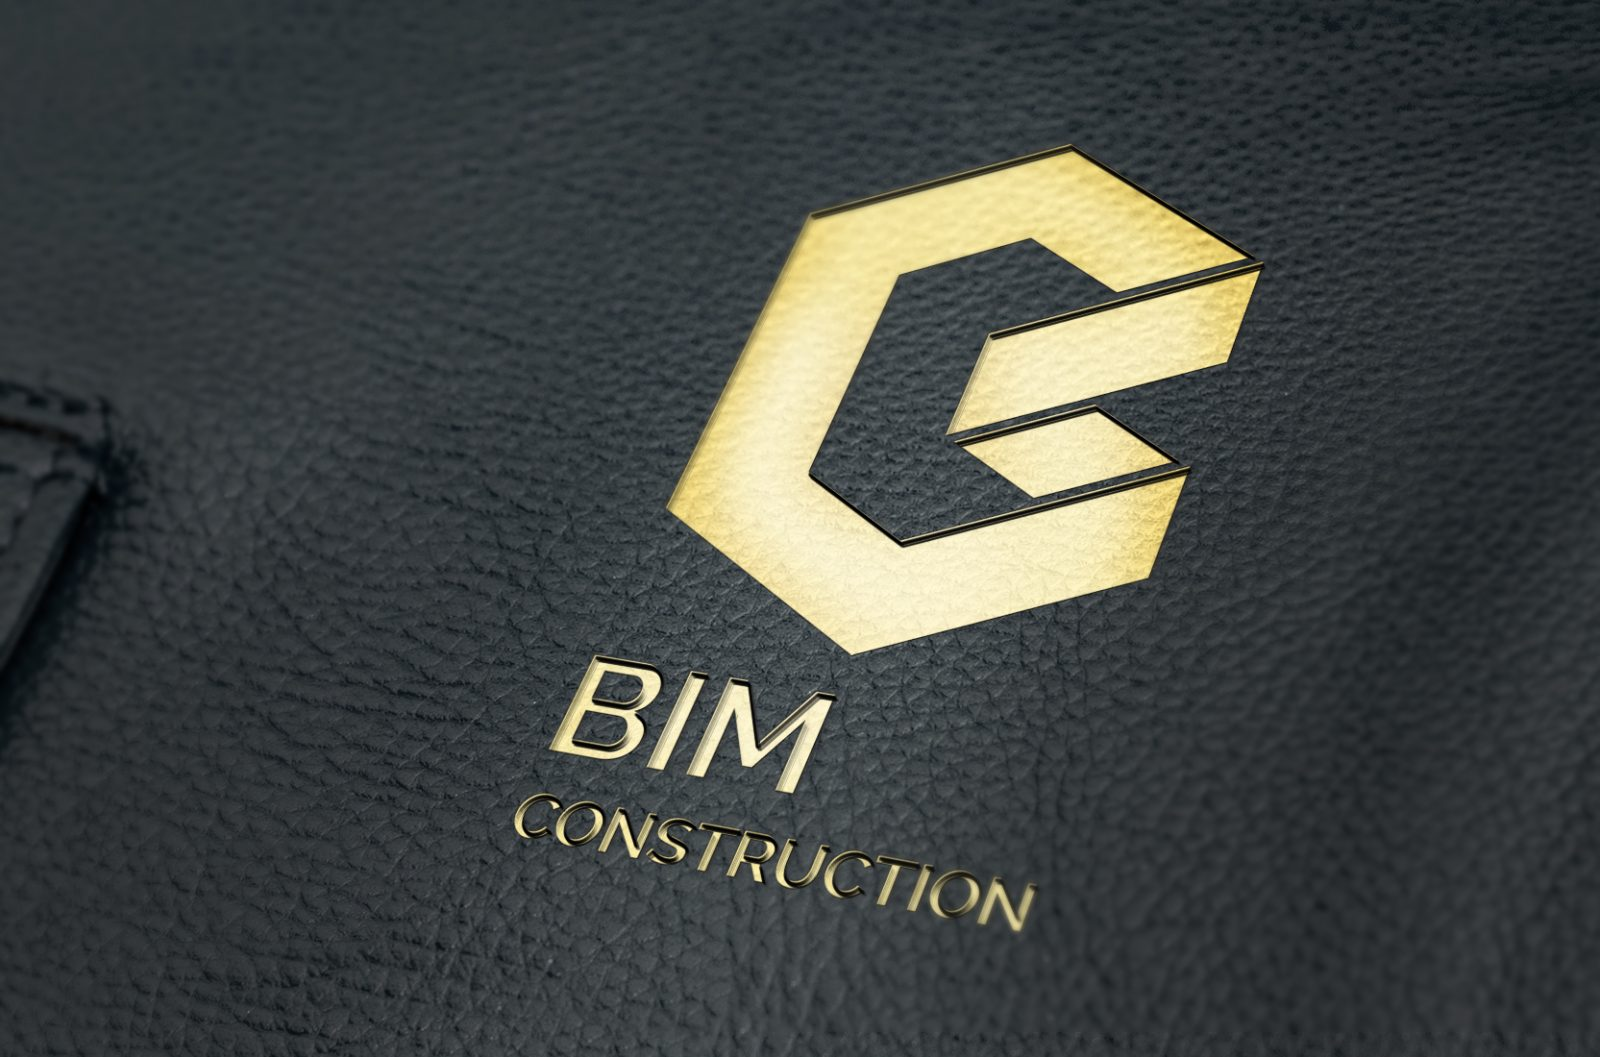 Embossed Leather Mock Up v1 1600x1057 - Bim Construction